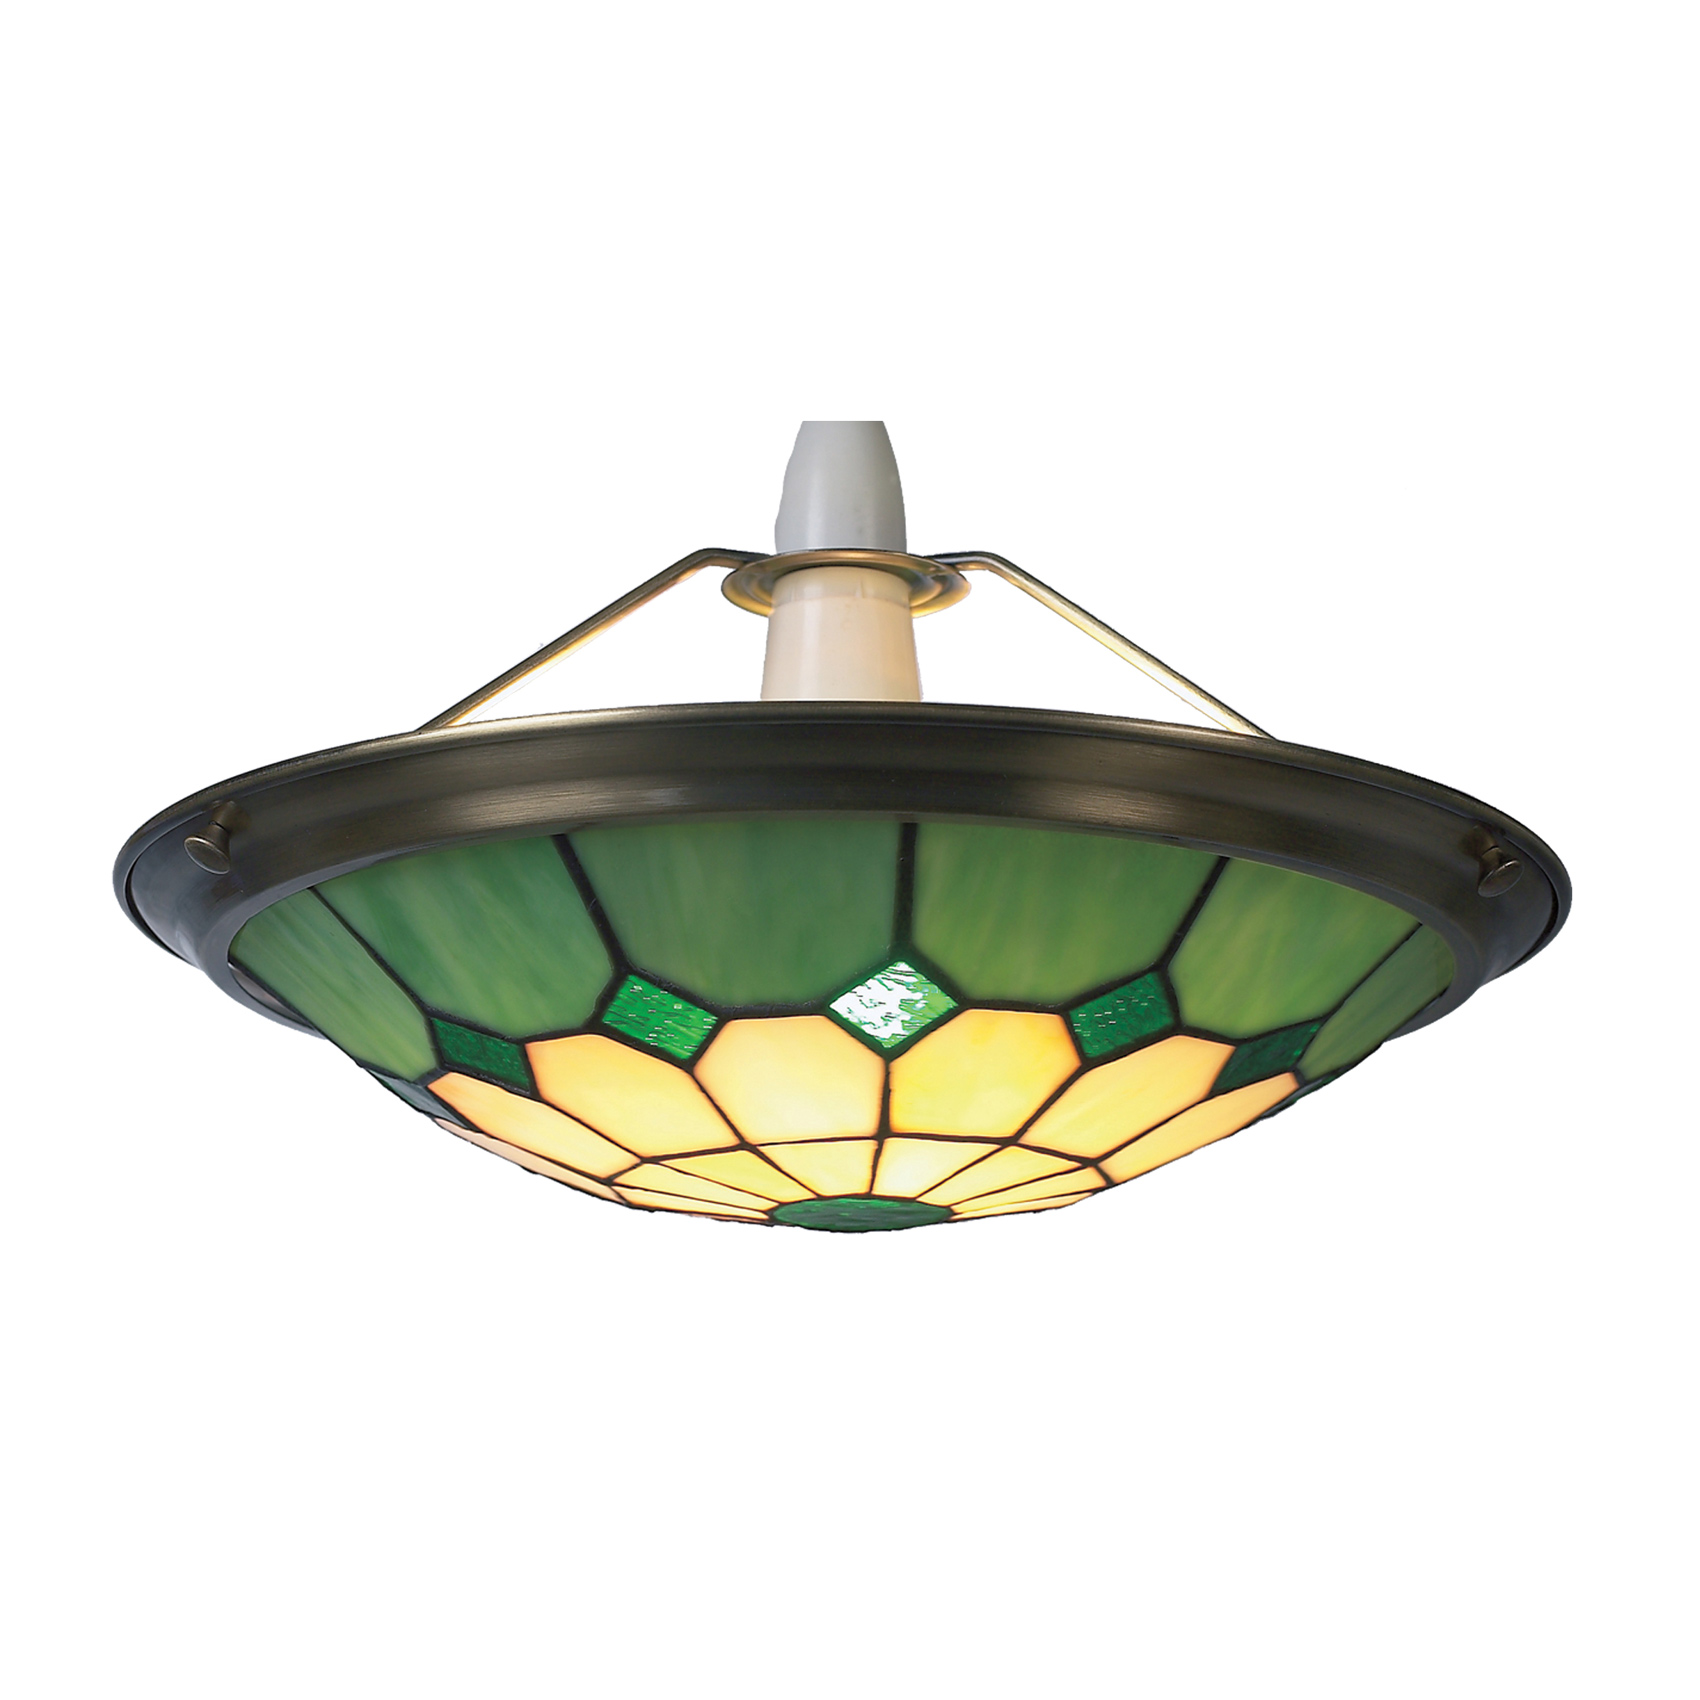 Green Ceiling Light Shades: green ceiling light shades photo - 2,Lighting